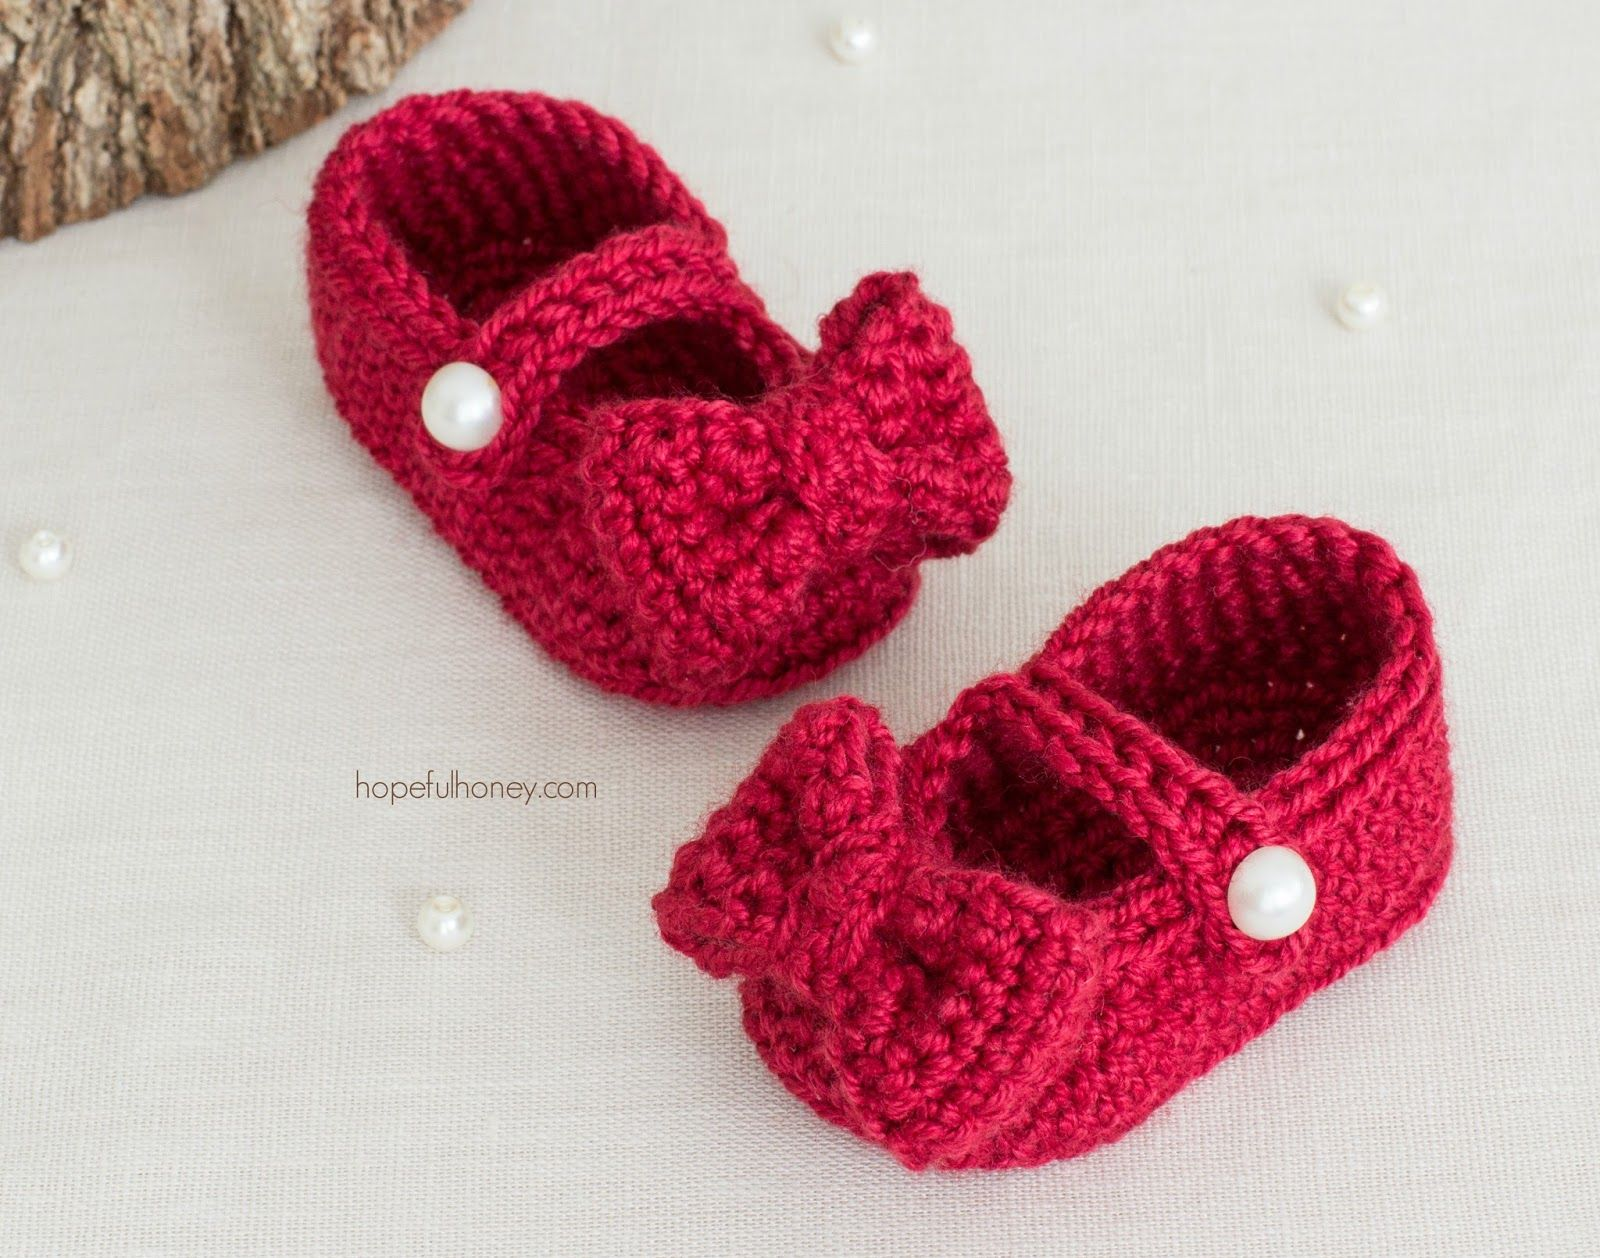 Ruby Red Mary Jane Booties - Free Crochet Pattern | Hopeful honey ...